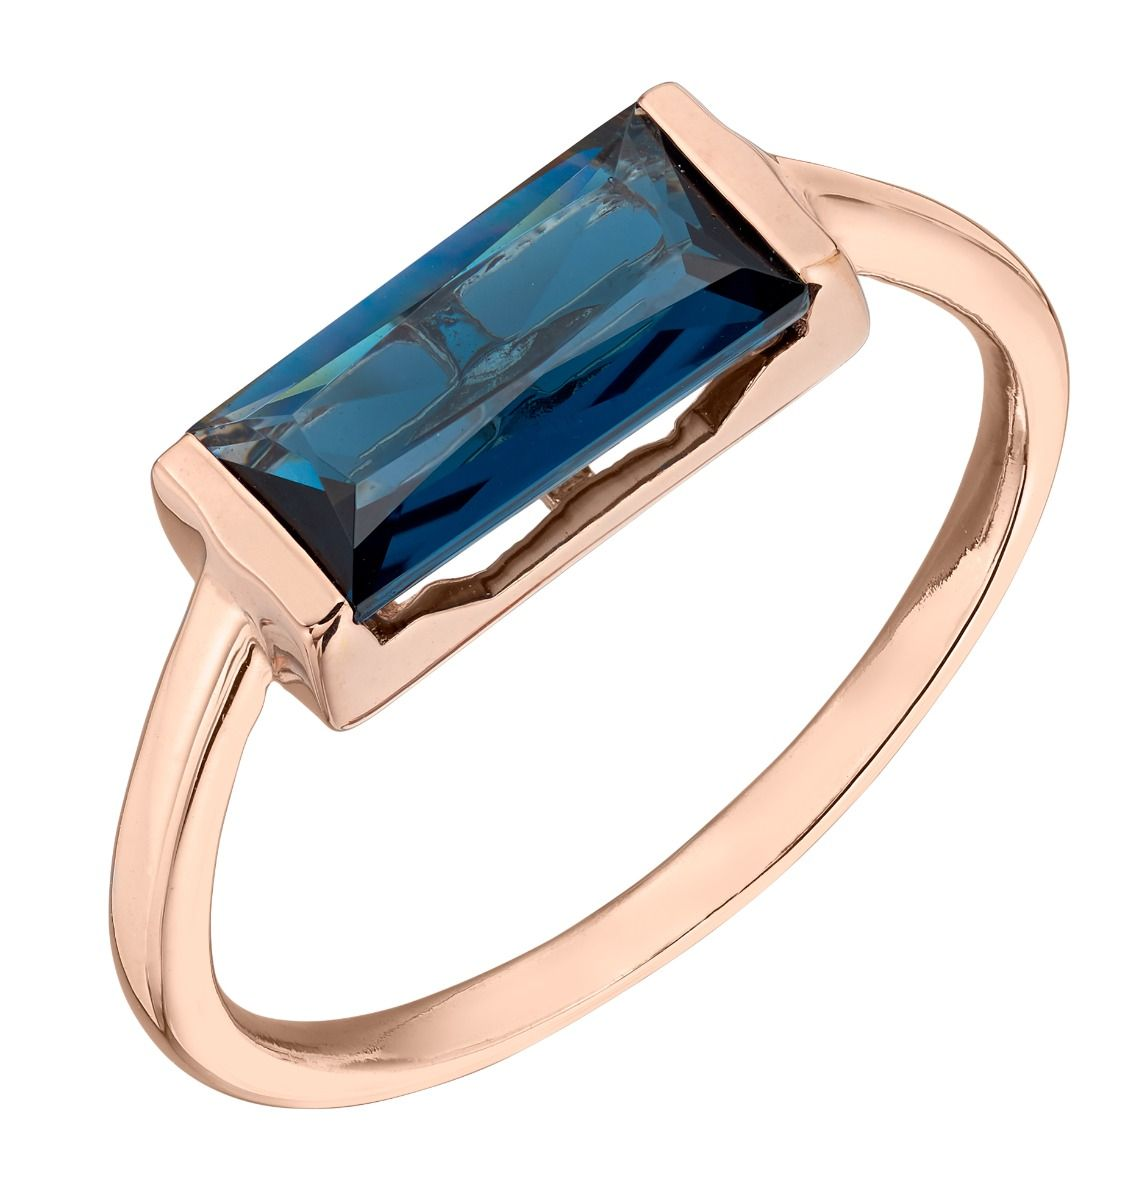 Fiorelli Silver Women's 925 Sterling Silver Baguette Blue Nano Crystal and Rose Gold Ring